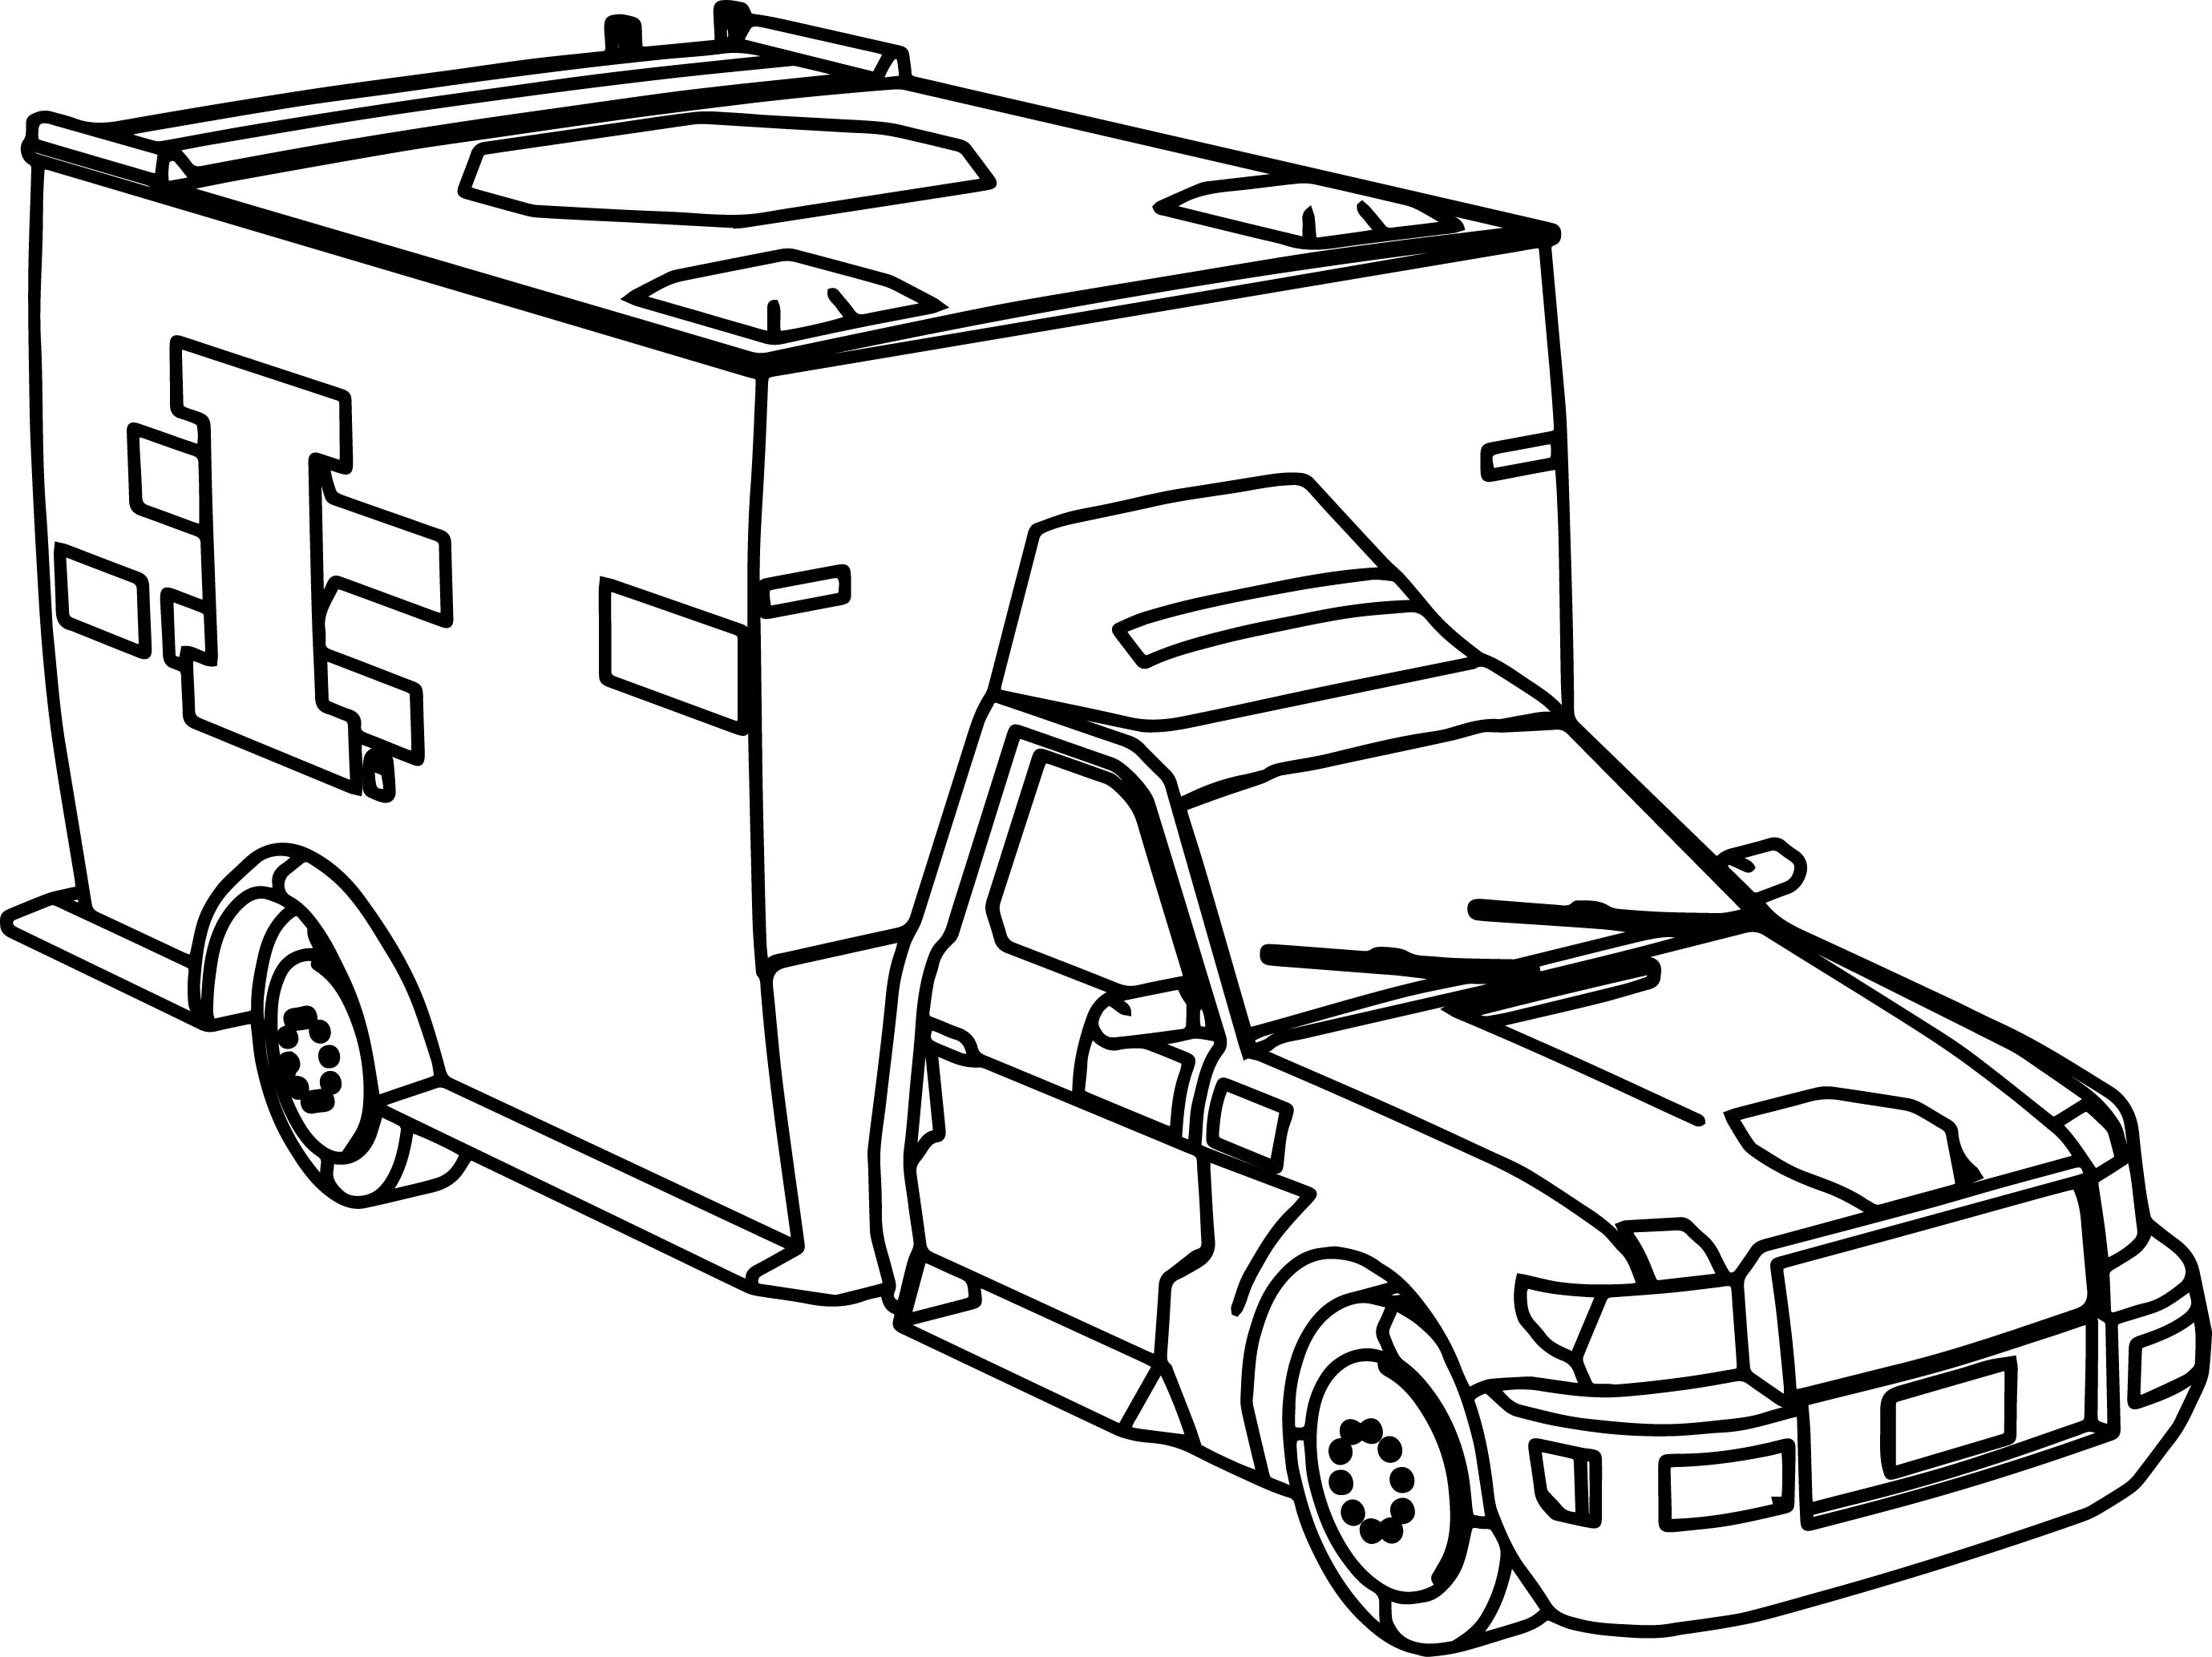 Fire department car crysis coloring page for Fire station coloring page